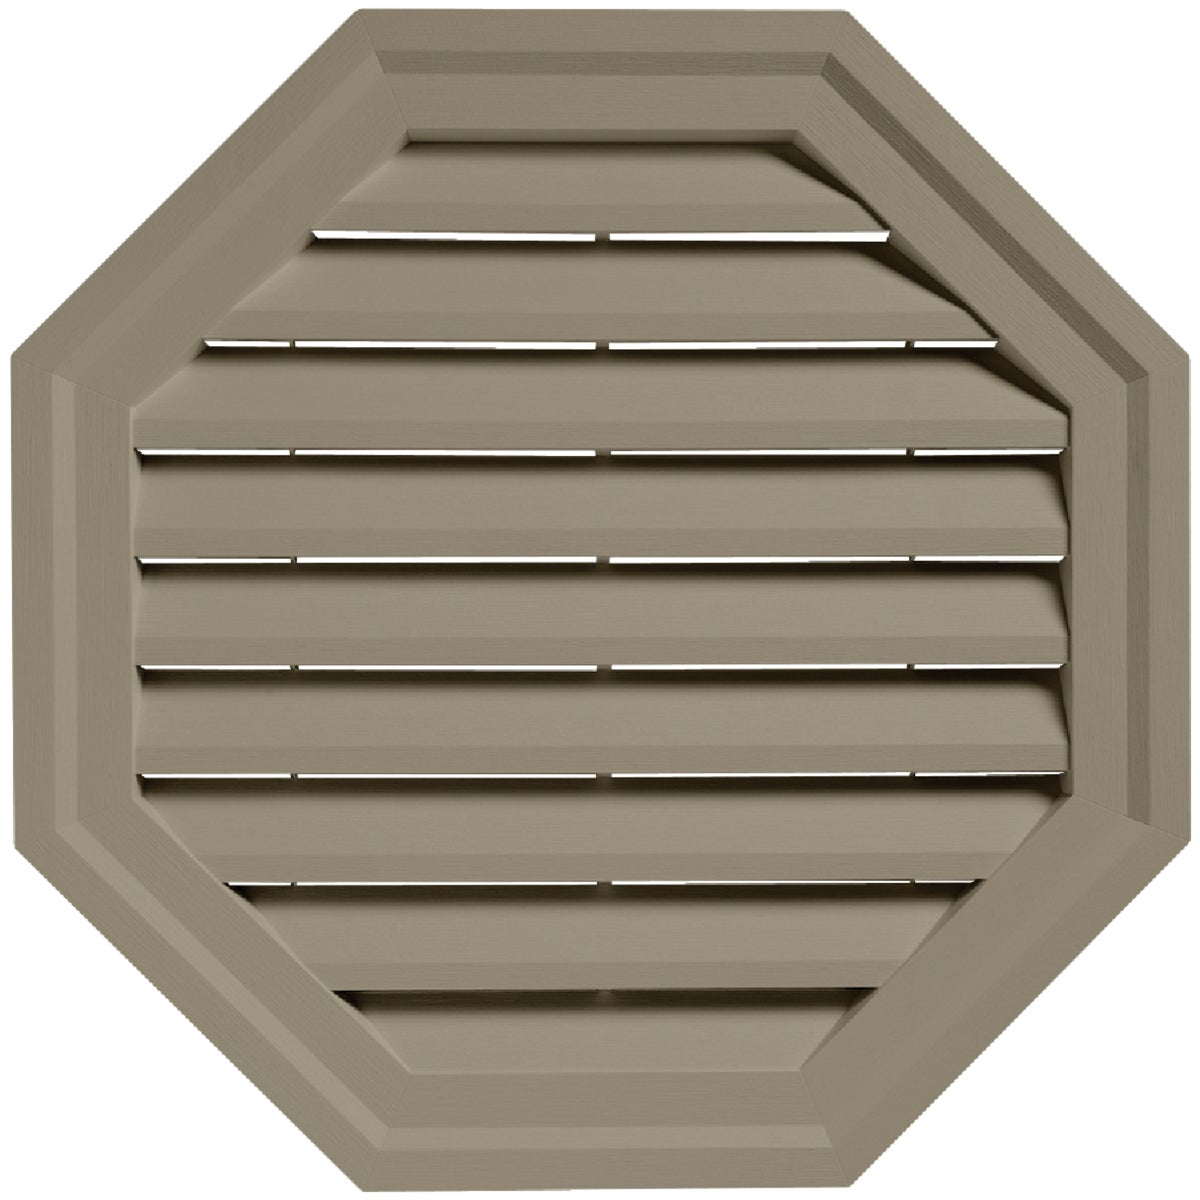 "18"" CLAY OCT GABLE VENT - OCTGV18 PC by Alcoa Home Exteriors"